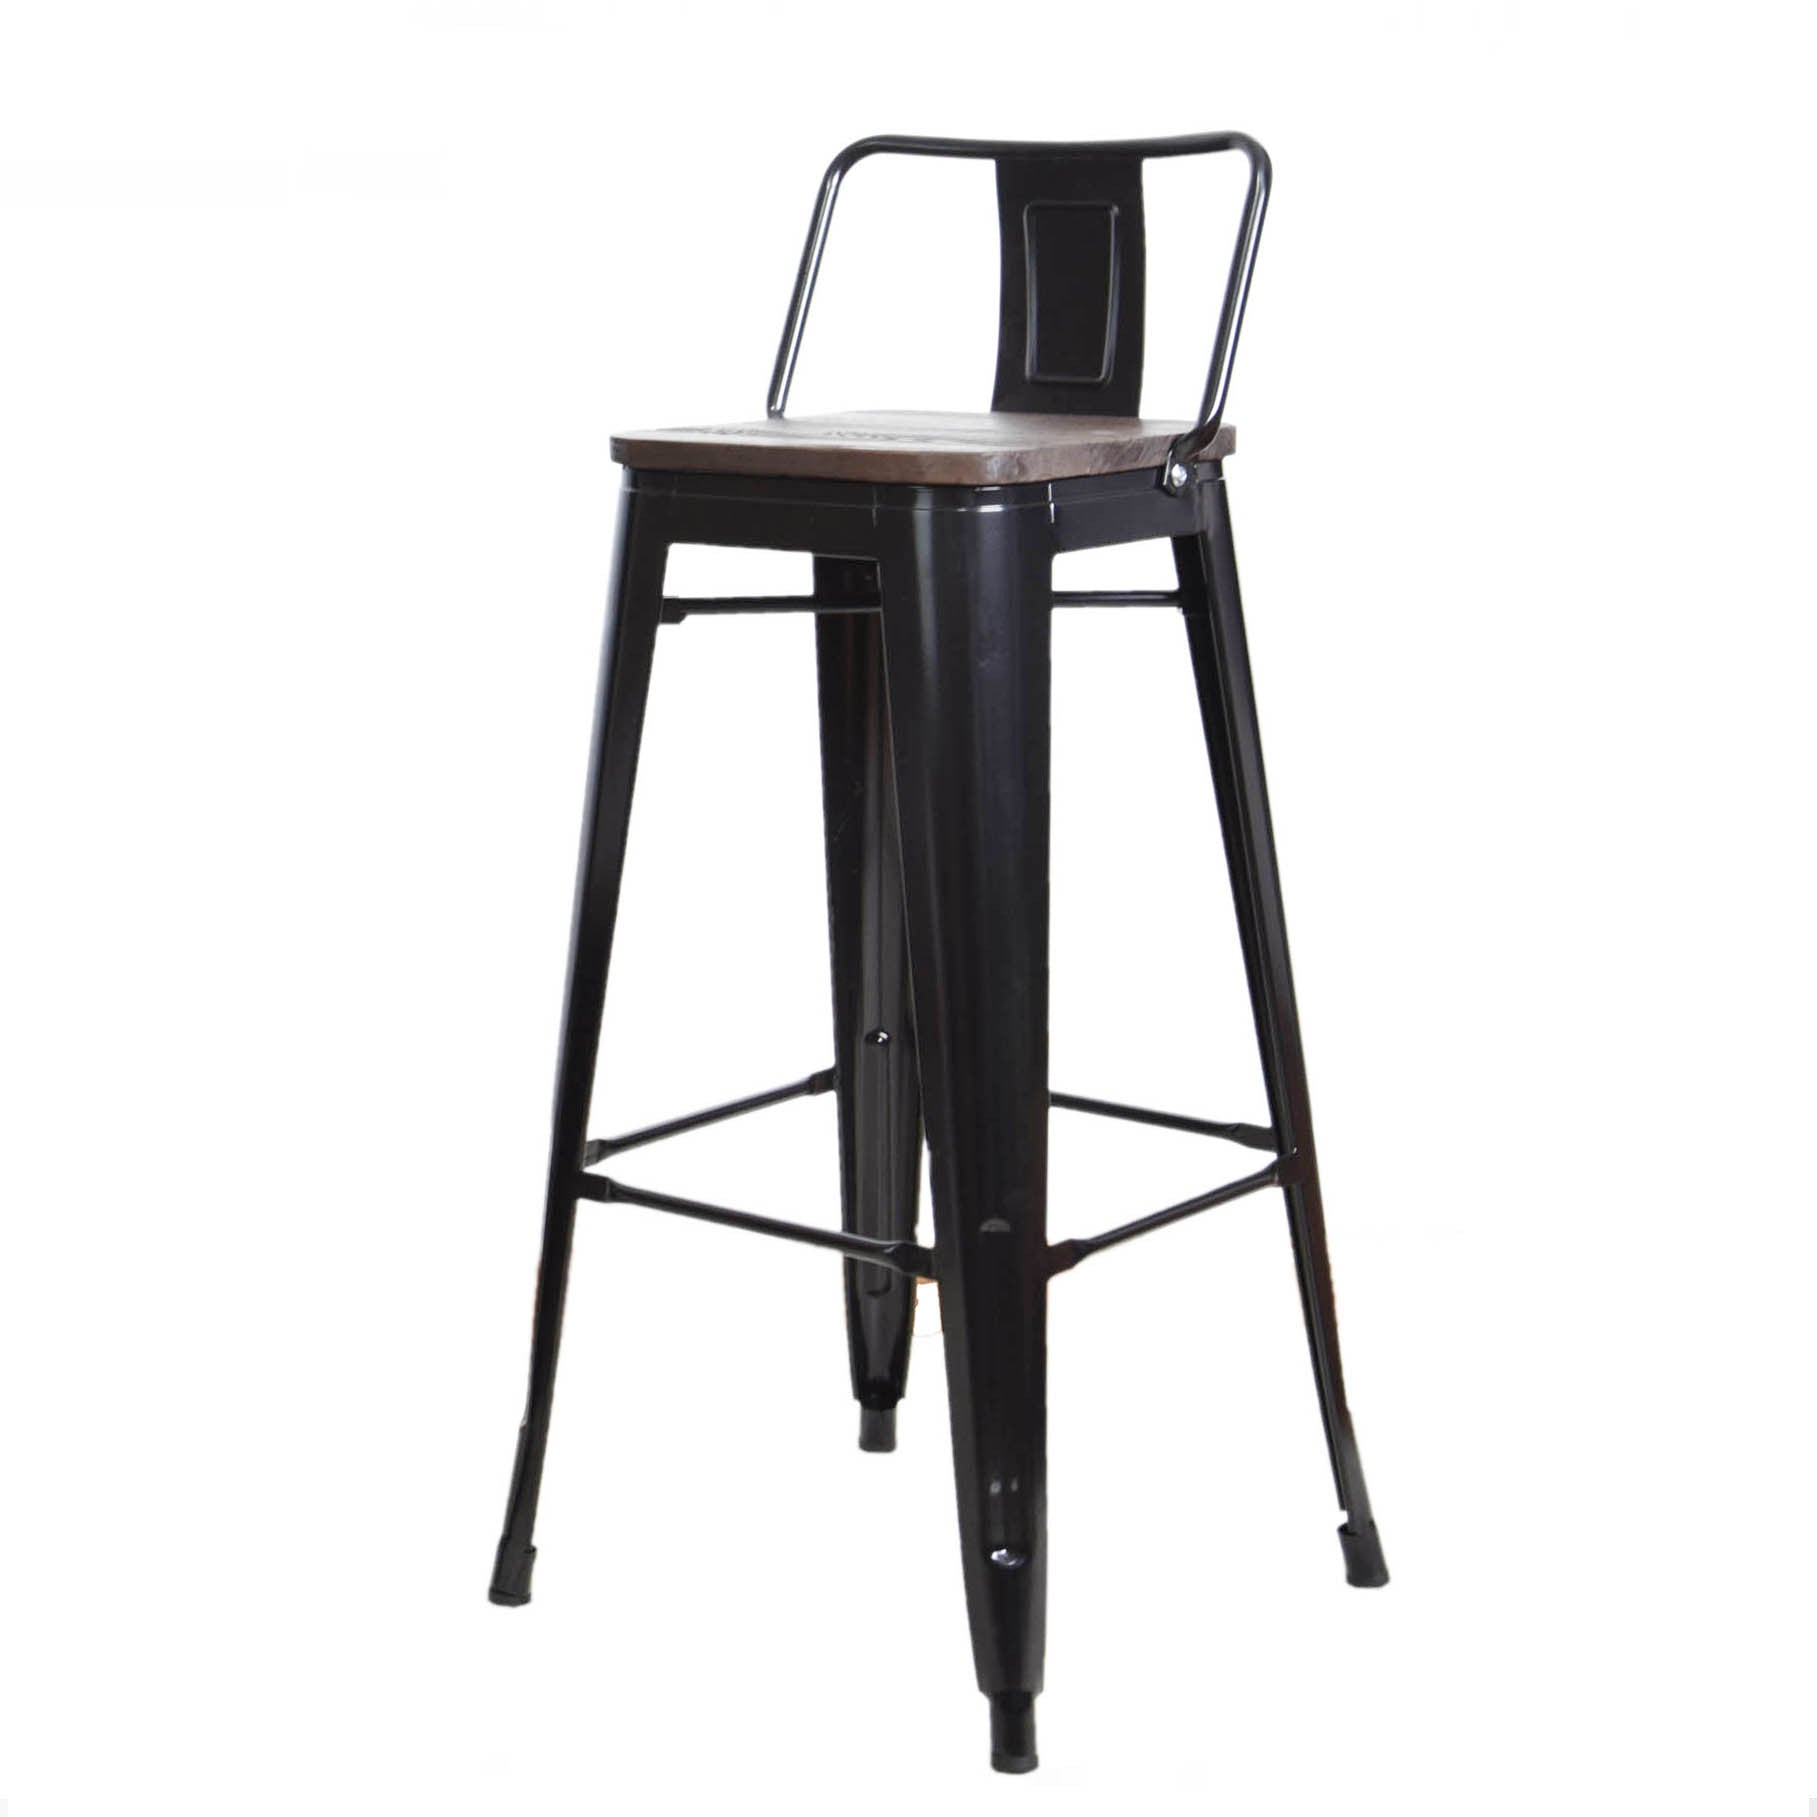 Bar Stool MC-012PC-B -  كرسي بار - Shop Online Furniture and Home Decor Store in Dubai, UAE at ebarza